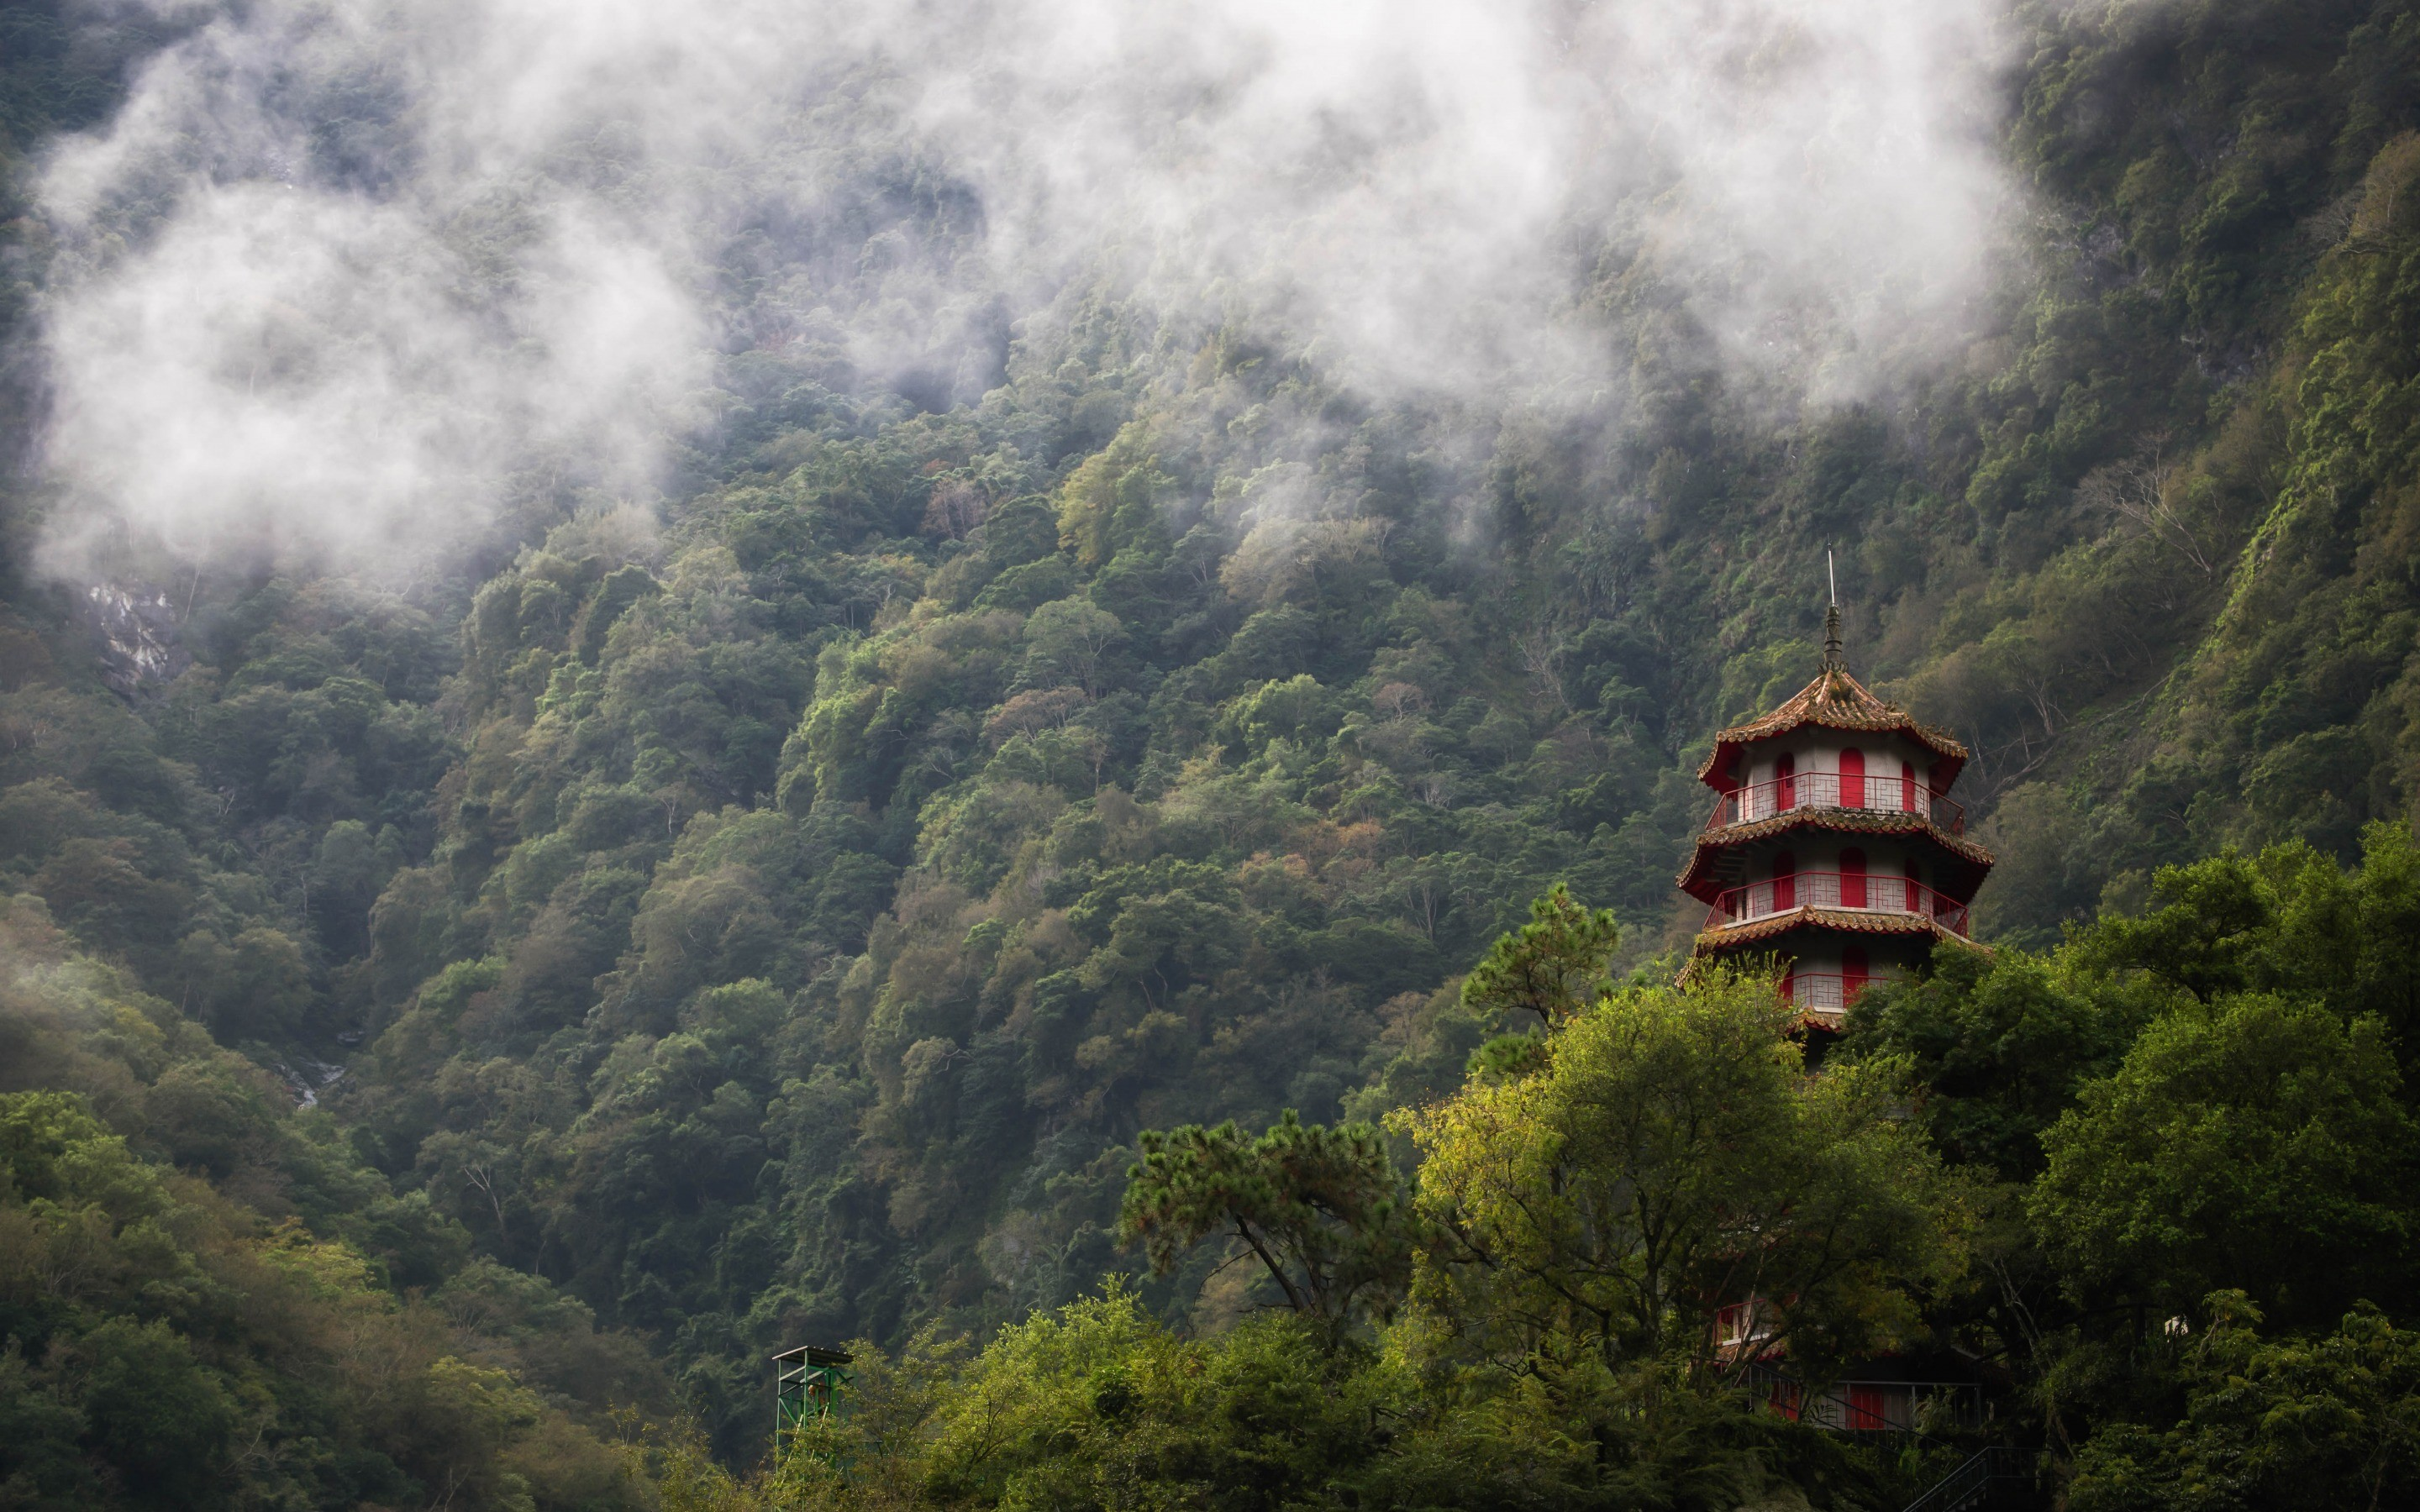 Res: 2880x1800, Taroko Gorge, Taiwan, Chinese architecture, temple, mountain landscape, fog